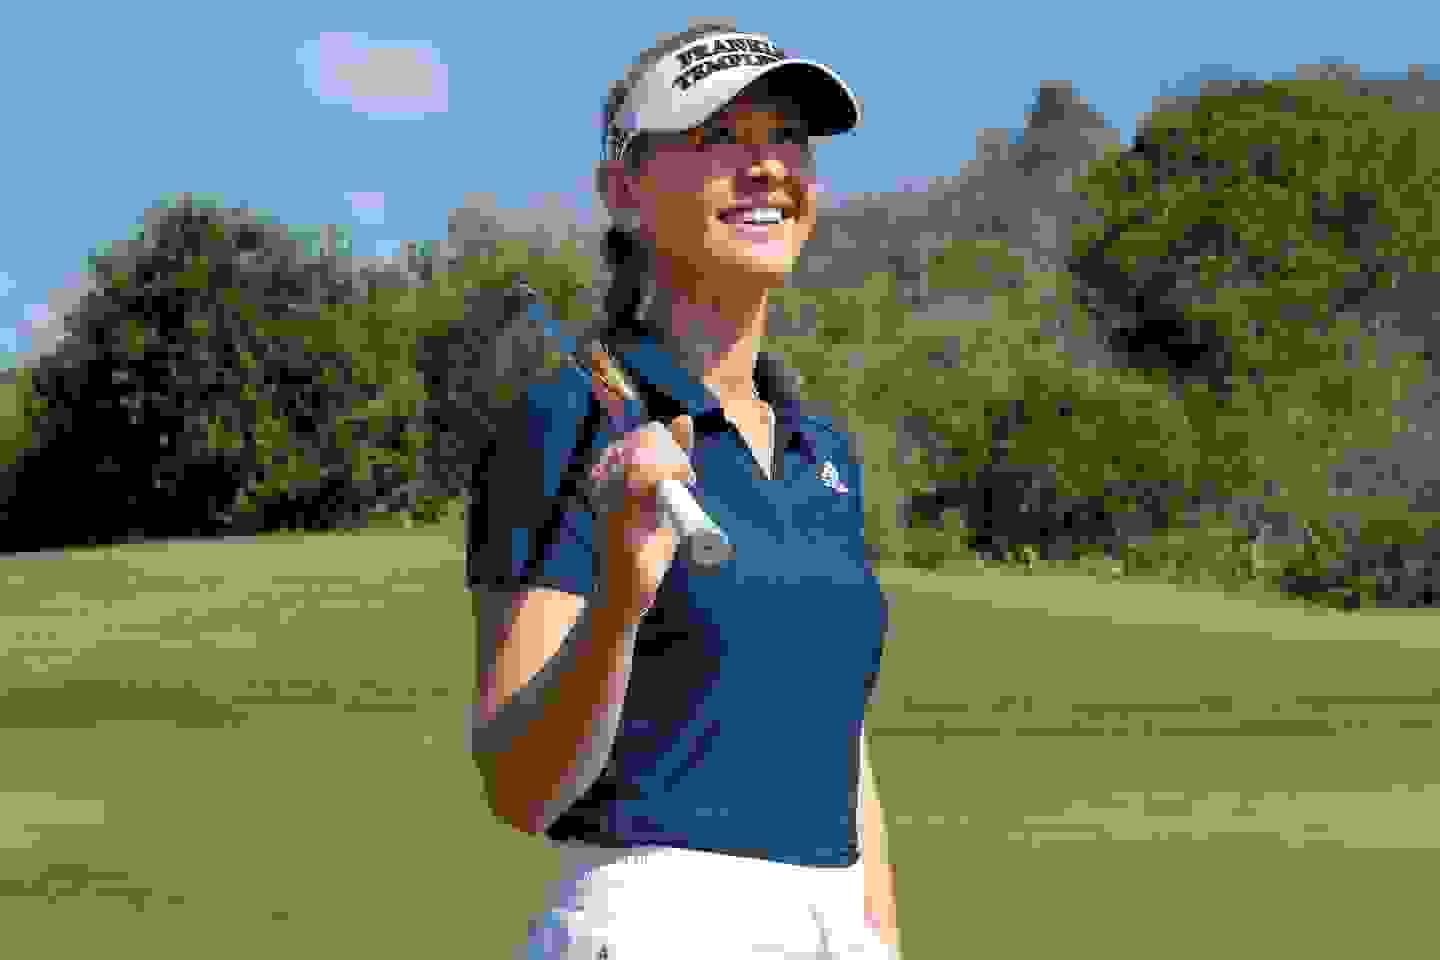 woman playing golf wearing a polo